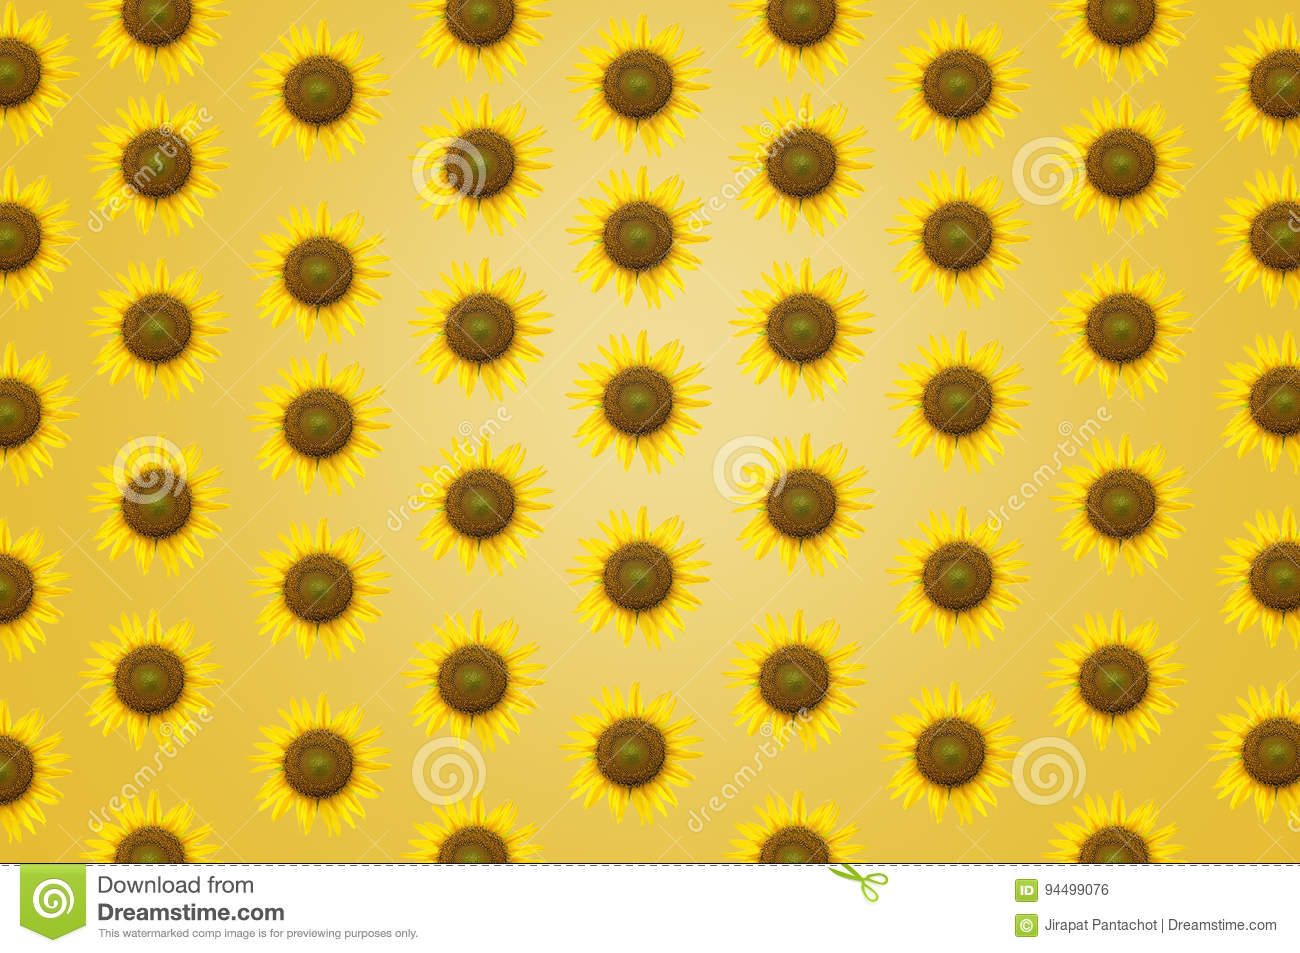 Beautiful frame sunflower background texture wallpaper